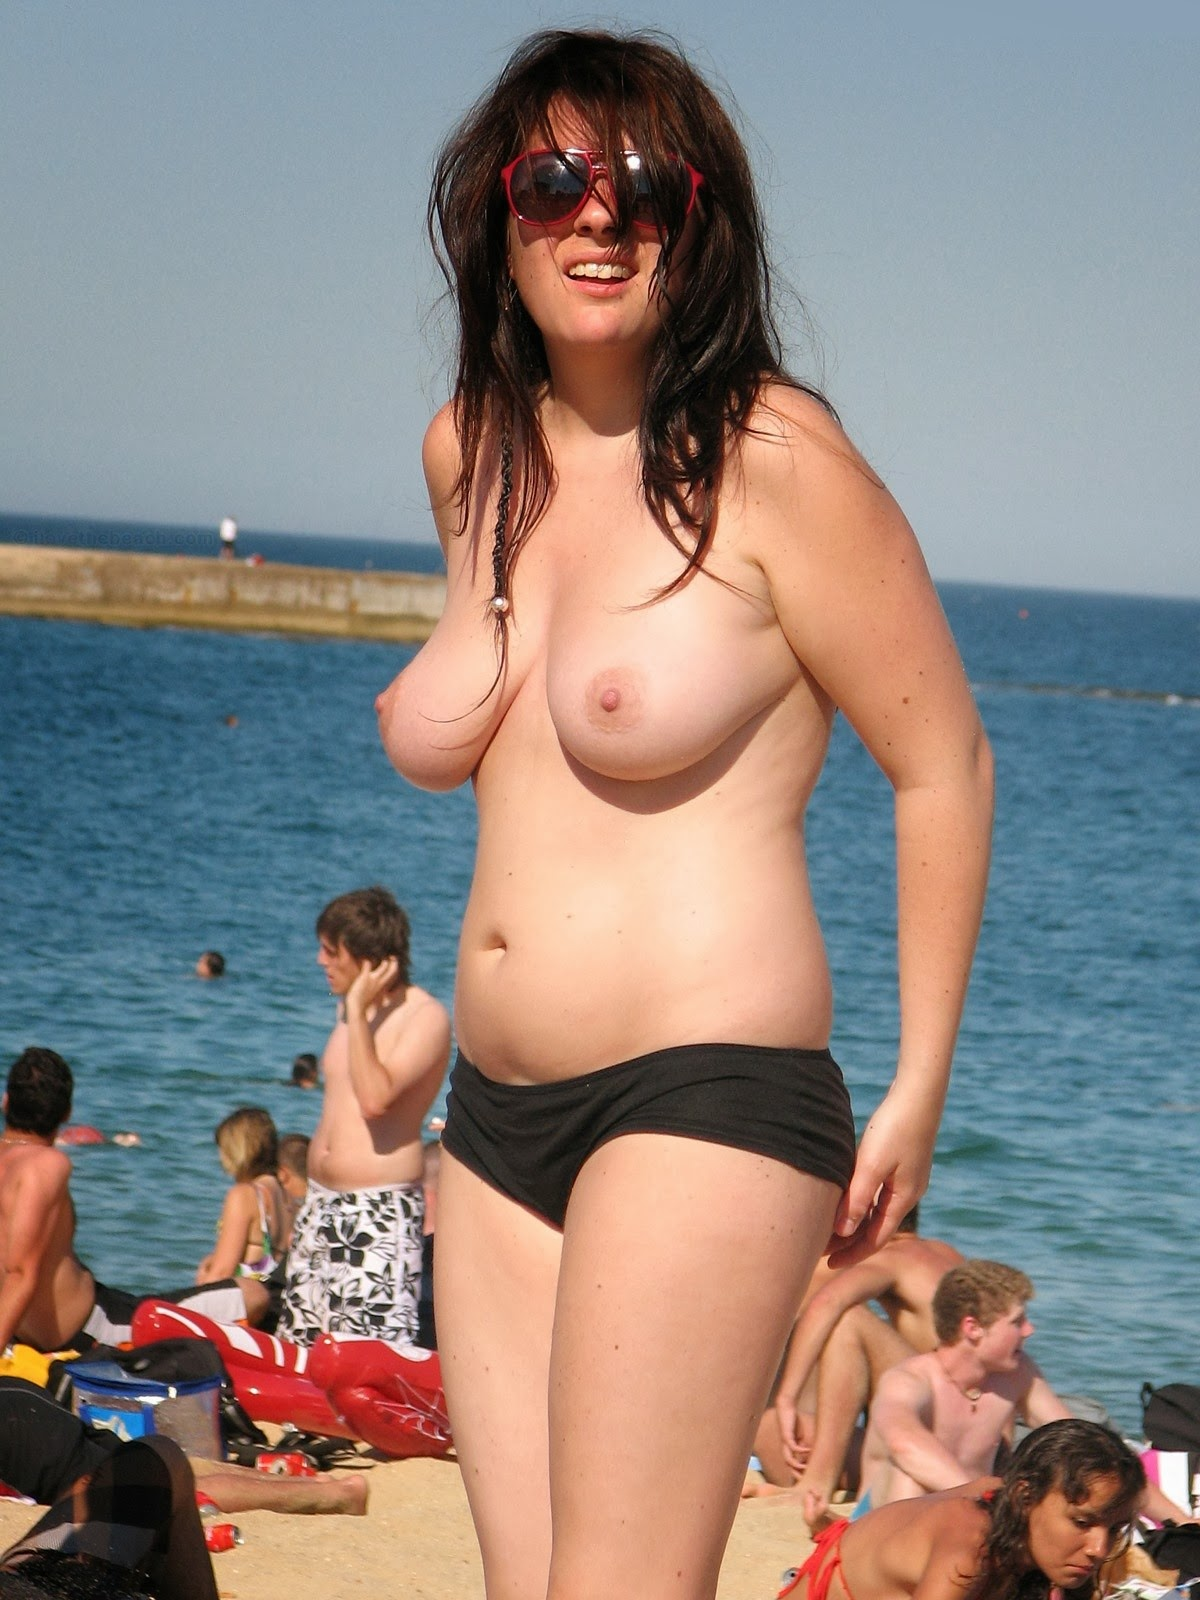 chubby-mother-topless-college-girl-pussy-sex-photo